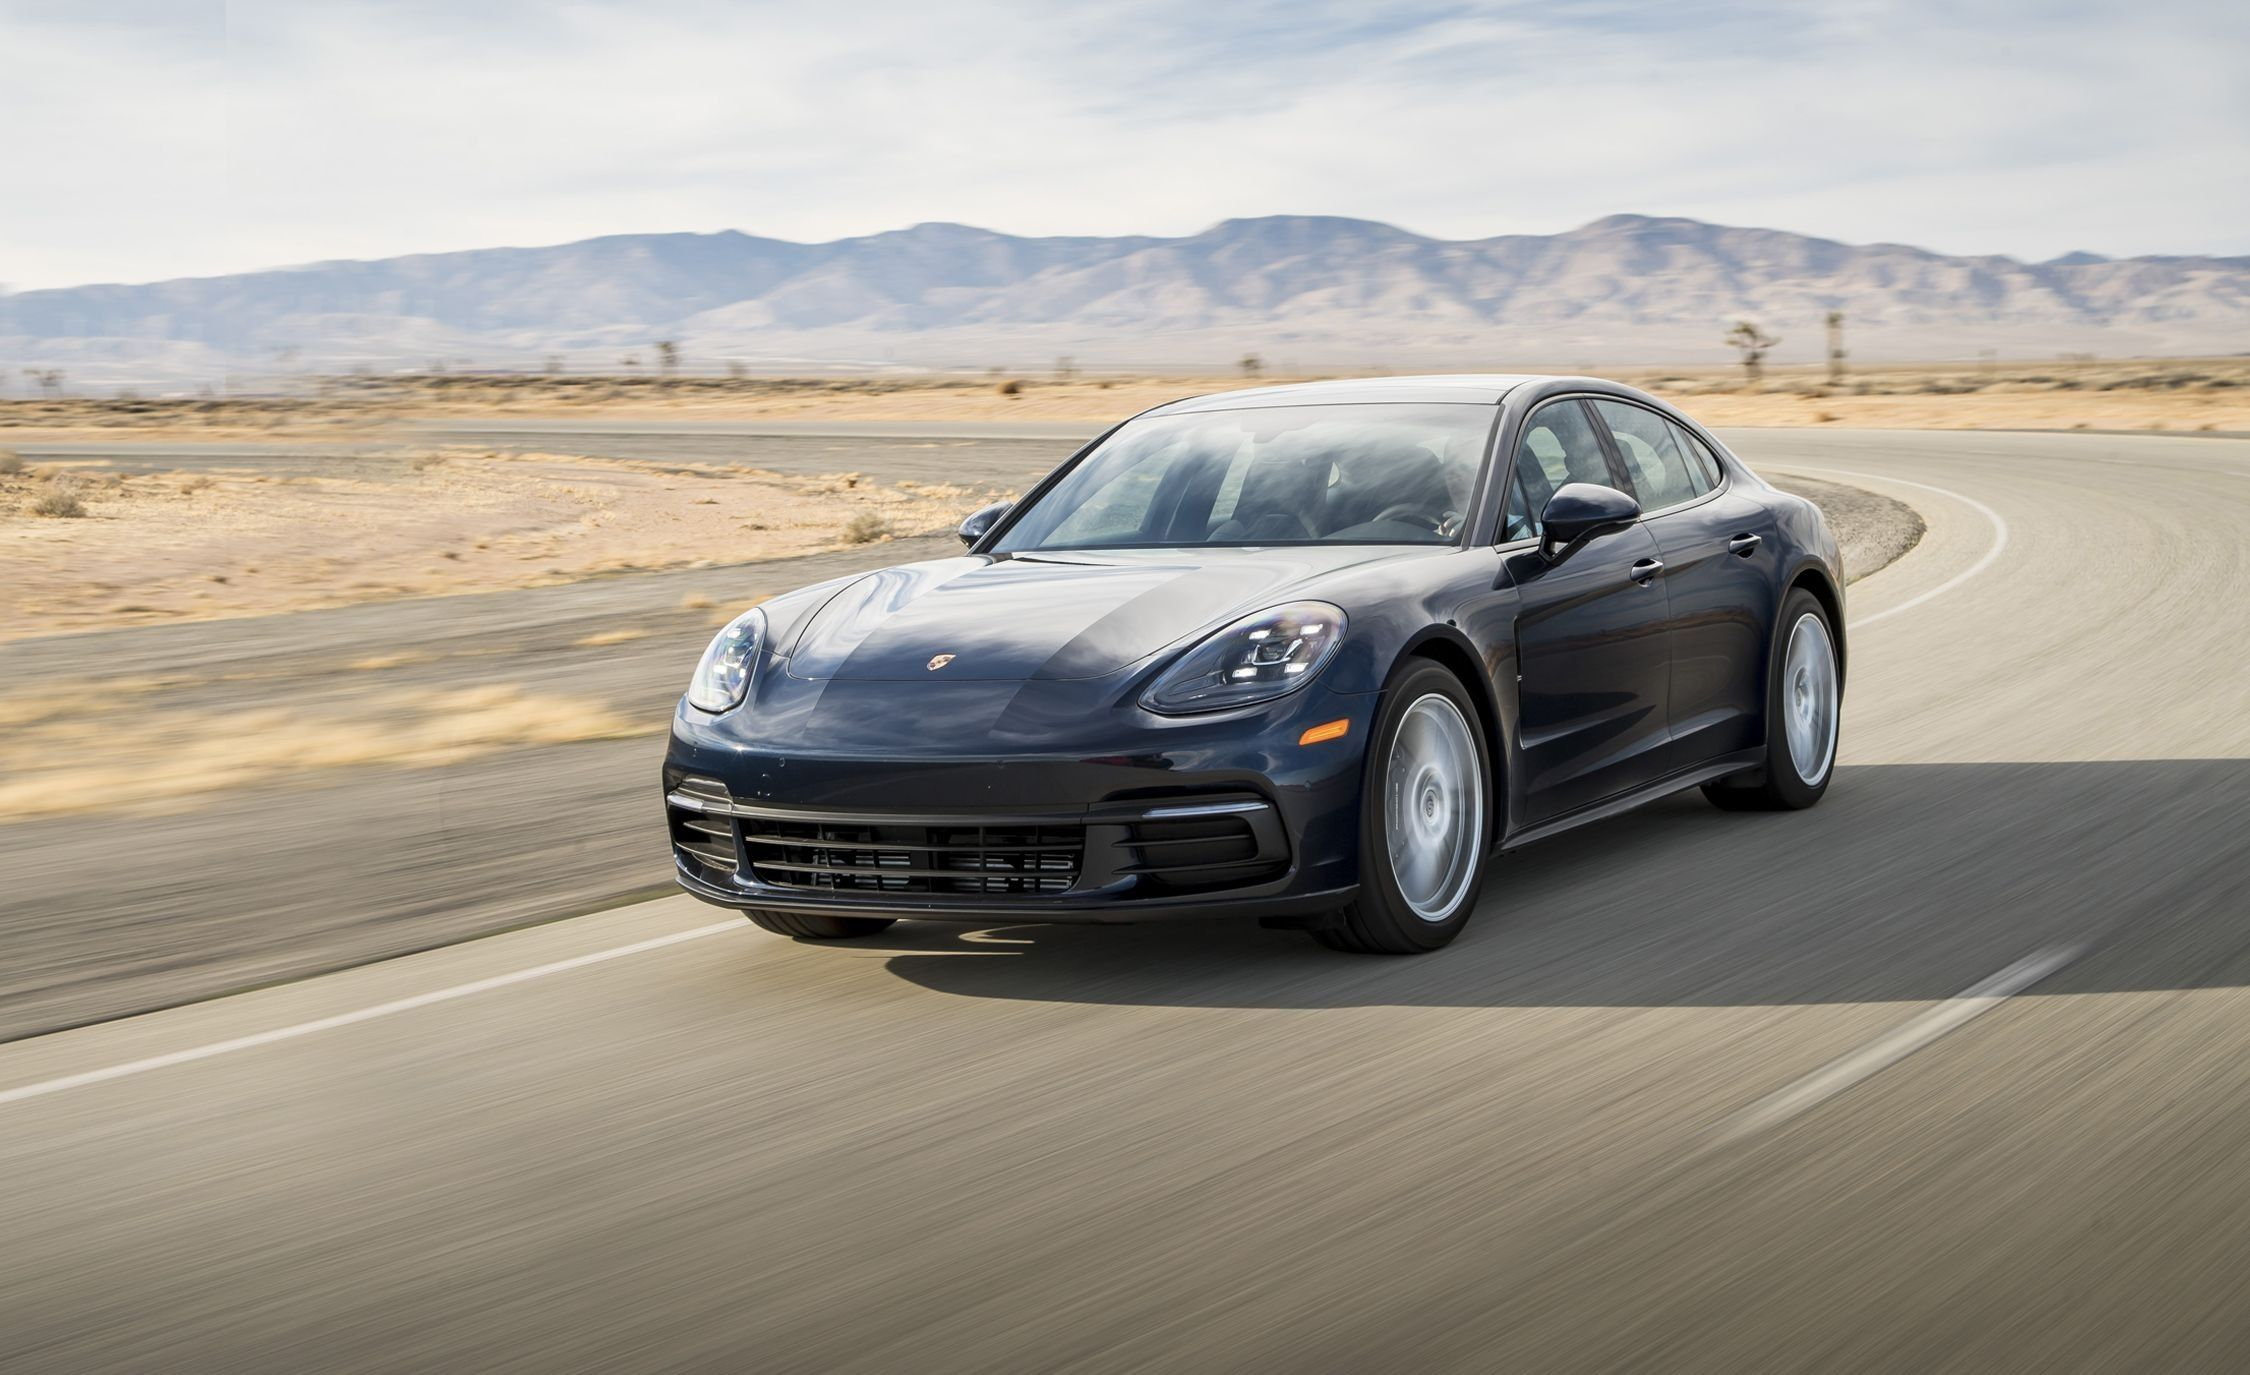 2018 Porsche Panamera Specs and Review